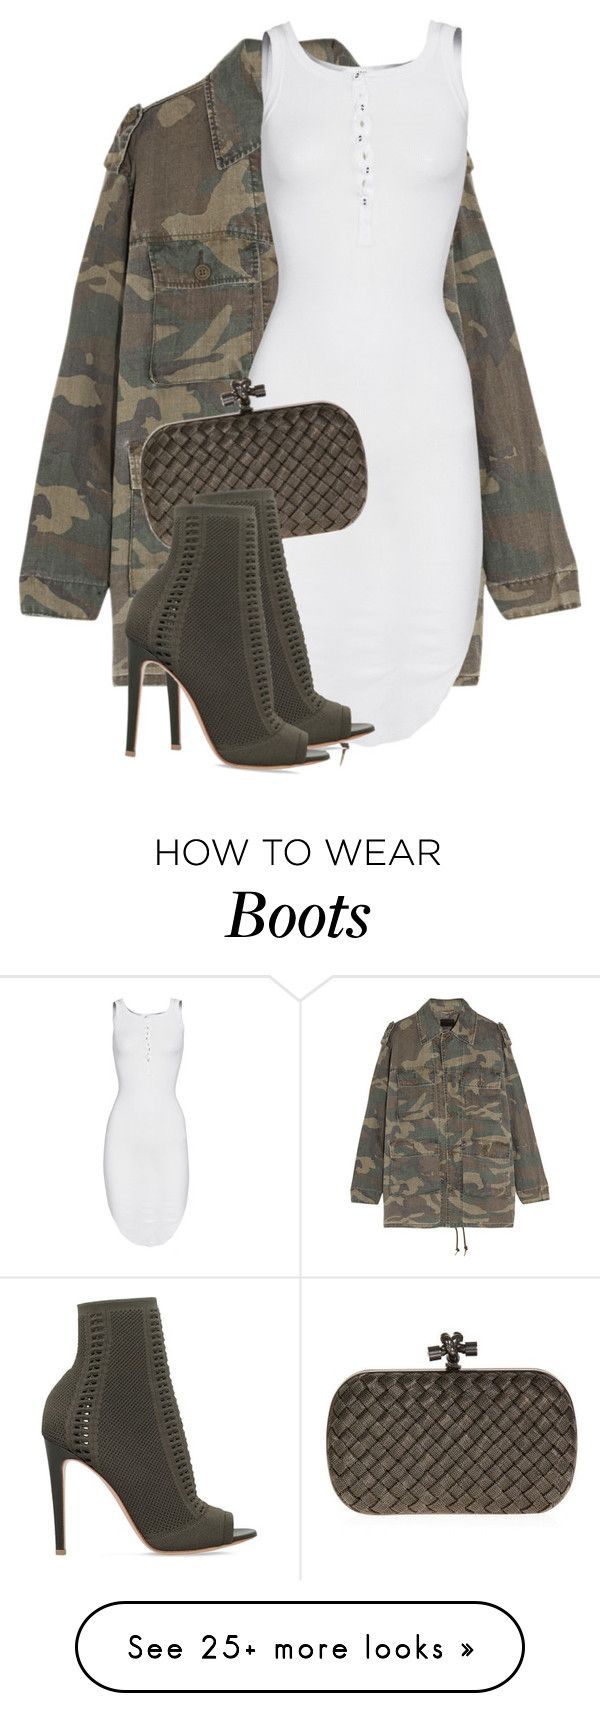 """Untitled #3502"" by xirix on Polyvore featuring Yves Saint Laurent, ISABEL BENENATO, Bottega Veneta and Gianvito Rossi"